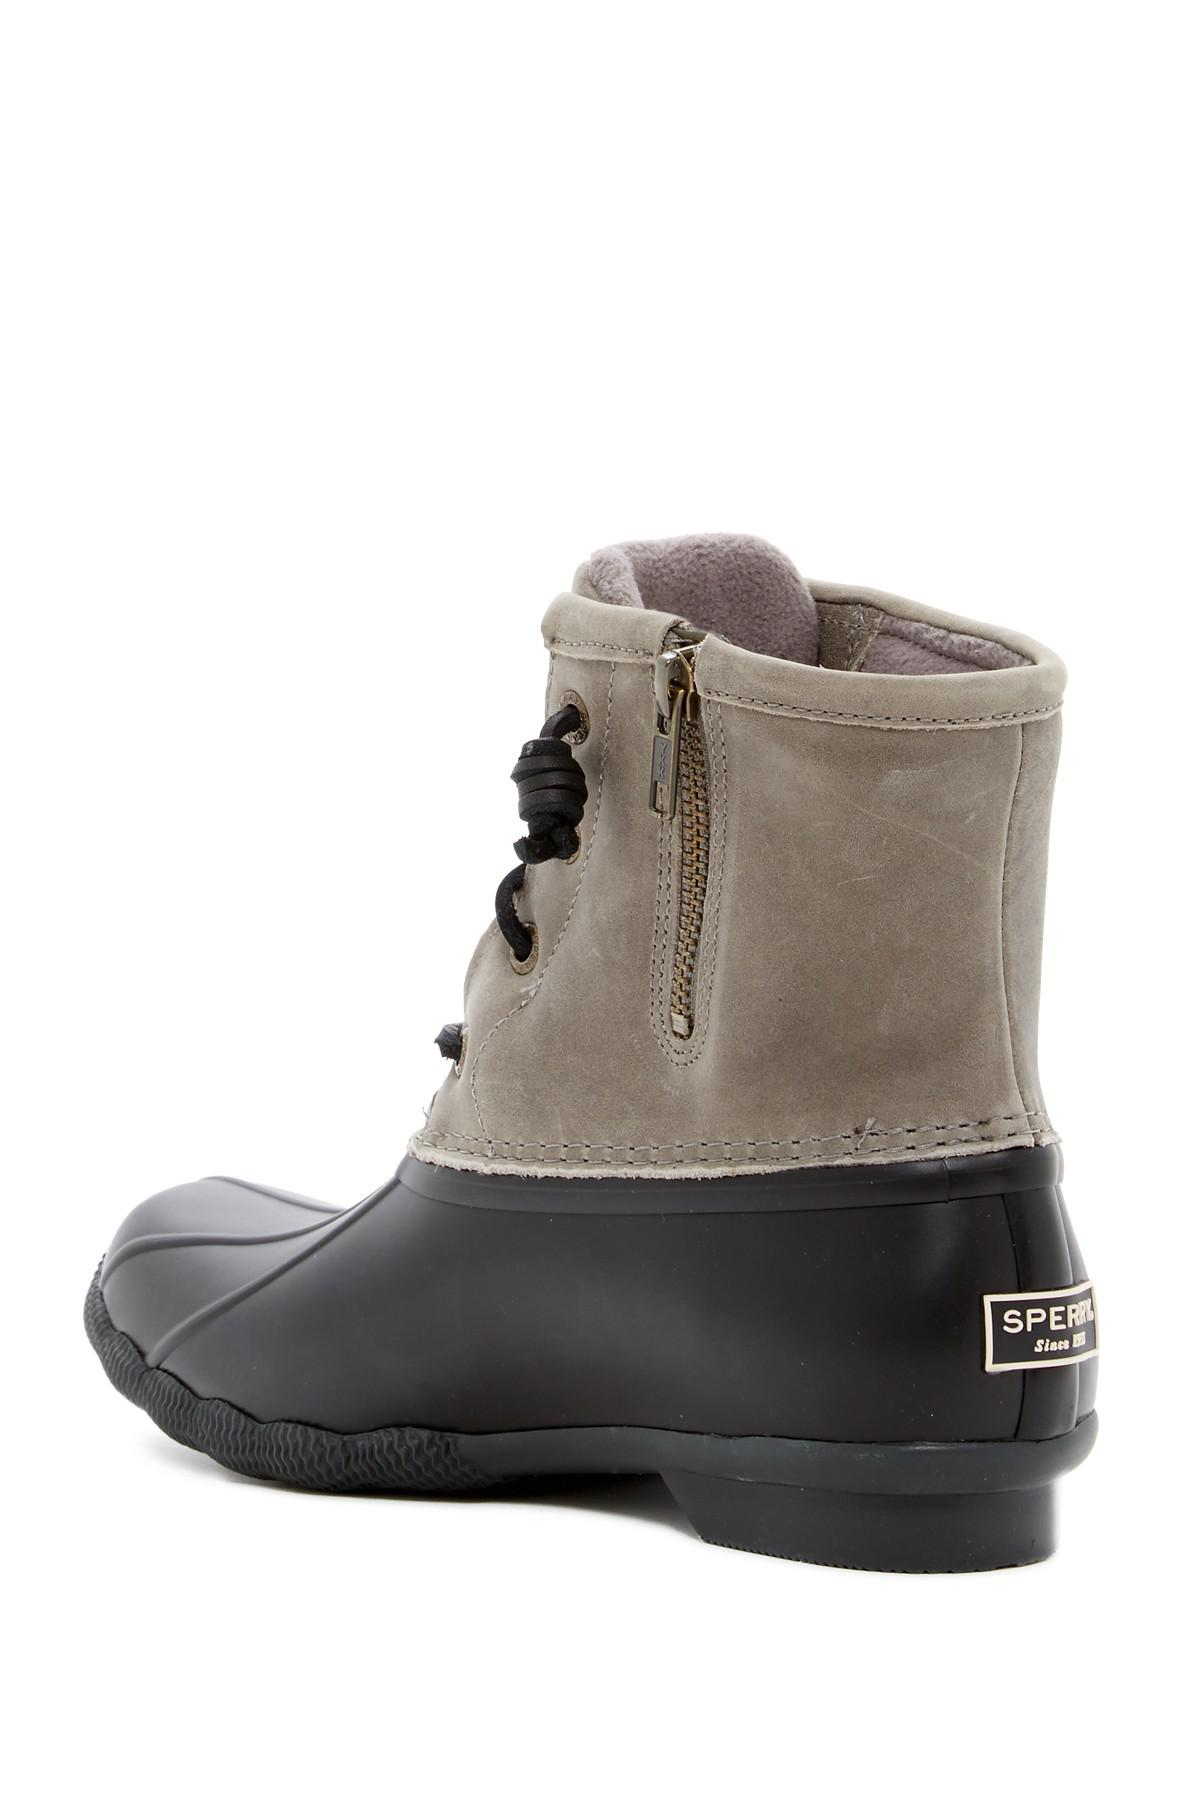 Sperry Saltwater Core Boot 6tL4gOJFW